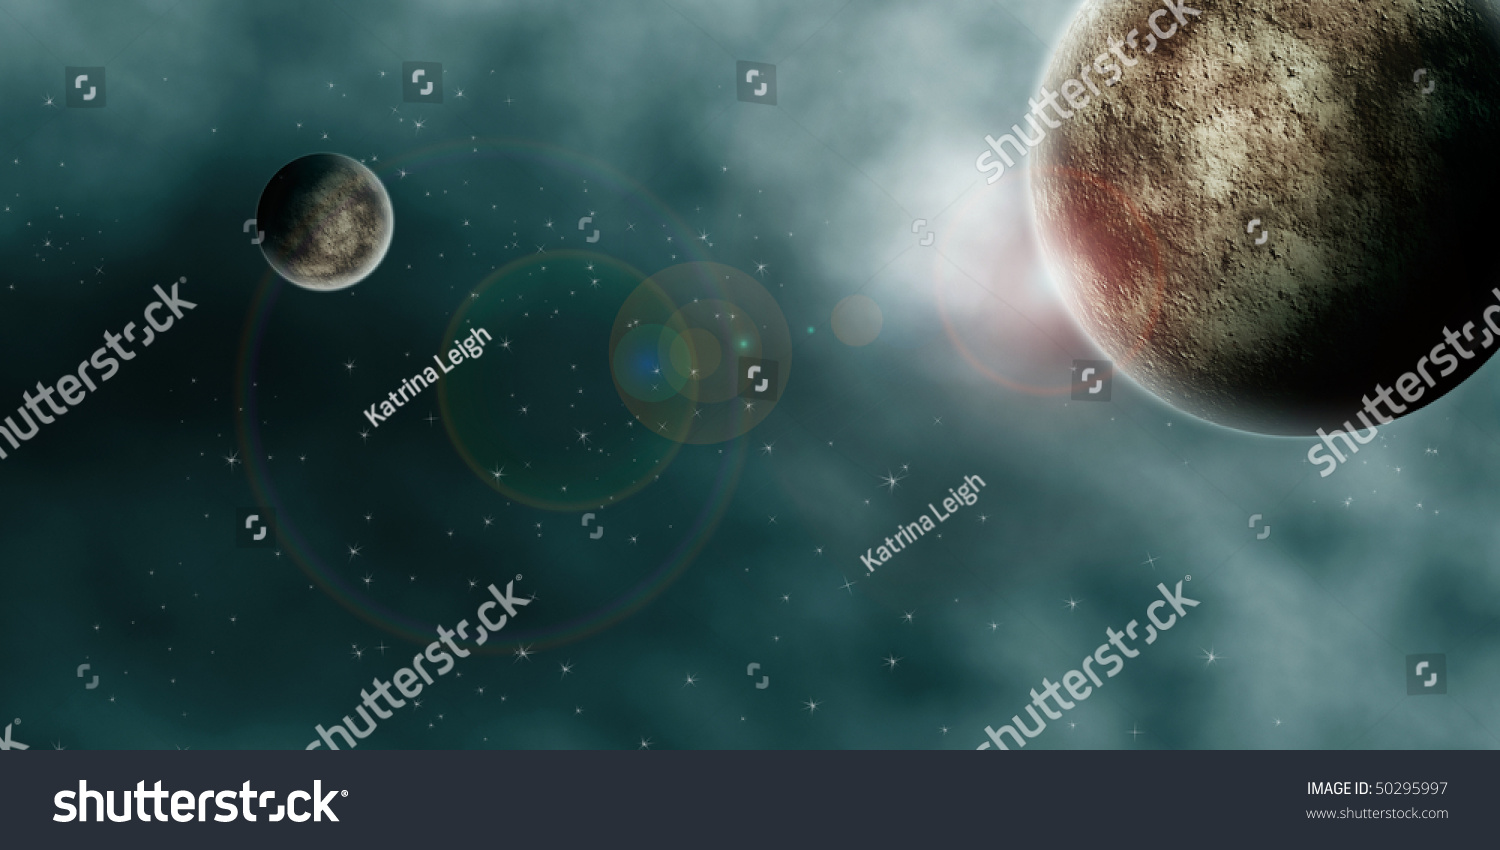 Drawing Planets Nebula Clouds Outer Space Stock Illustration 50295997